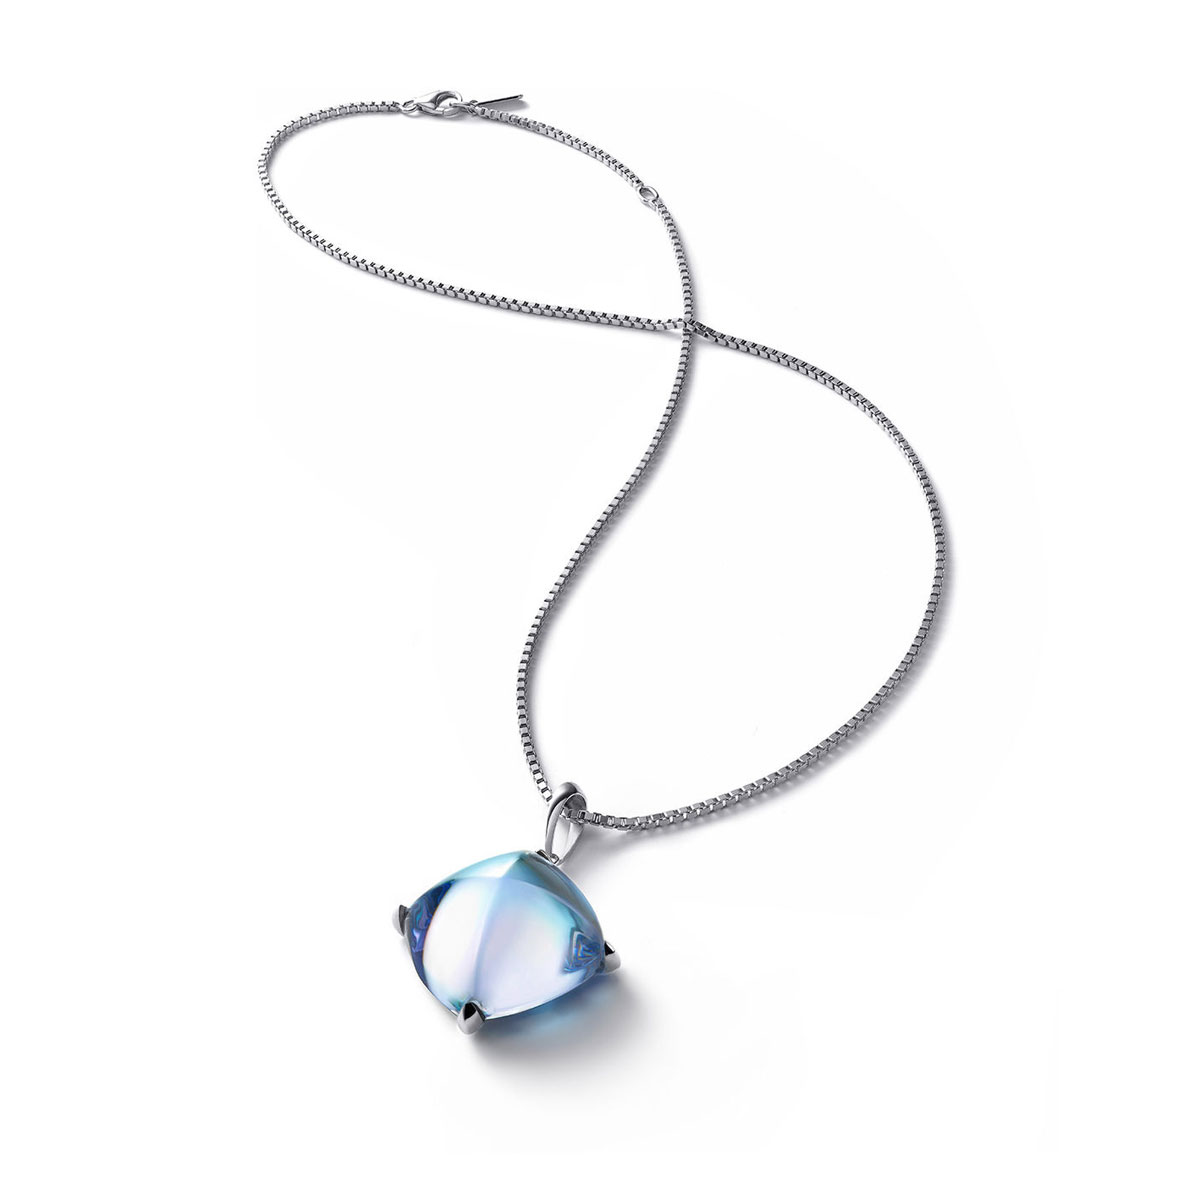 Baccarat Crystal Medicis Large Necklace Sterling Silver Aqua Mirror